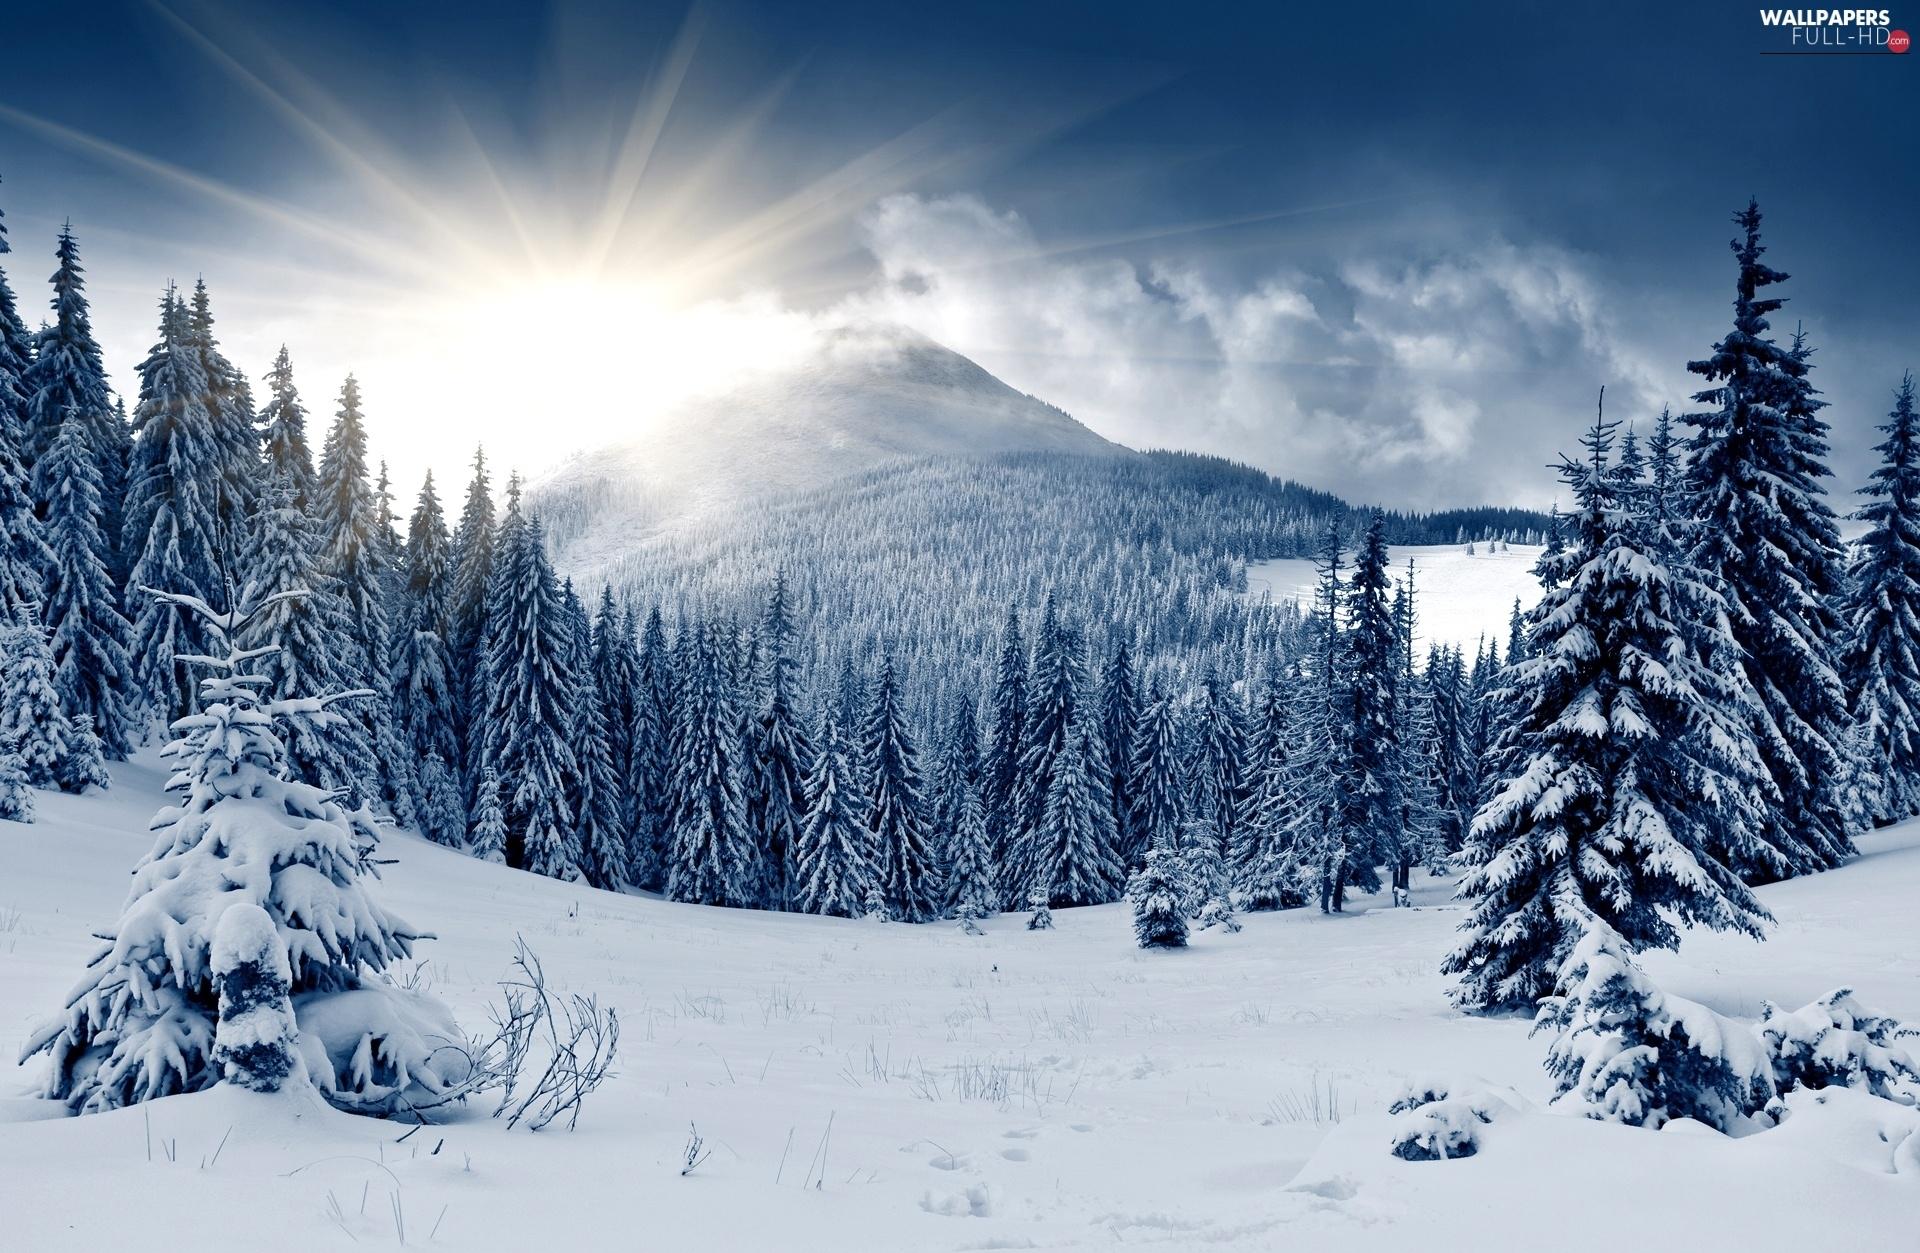 rays, Spruces, Mountains, winter, sun, snow